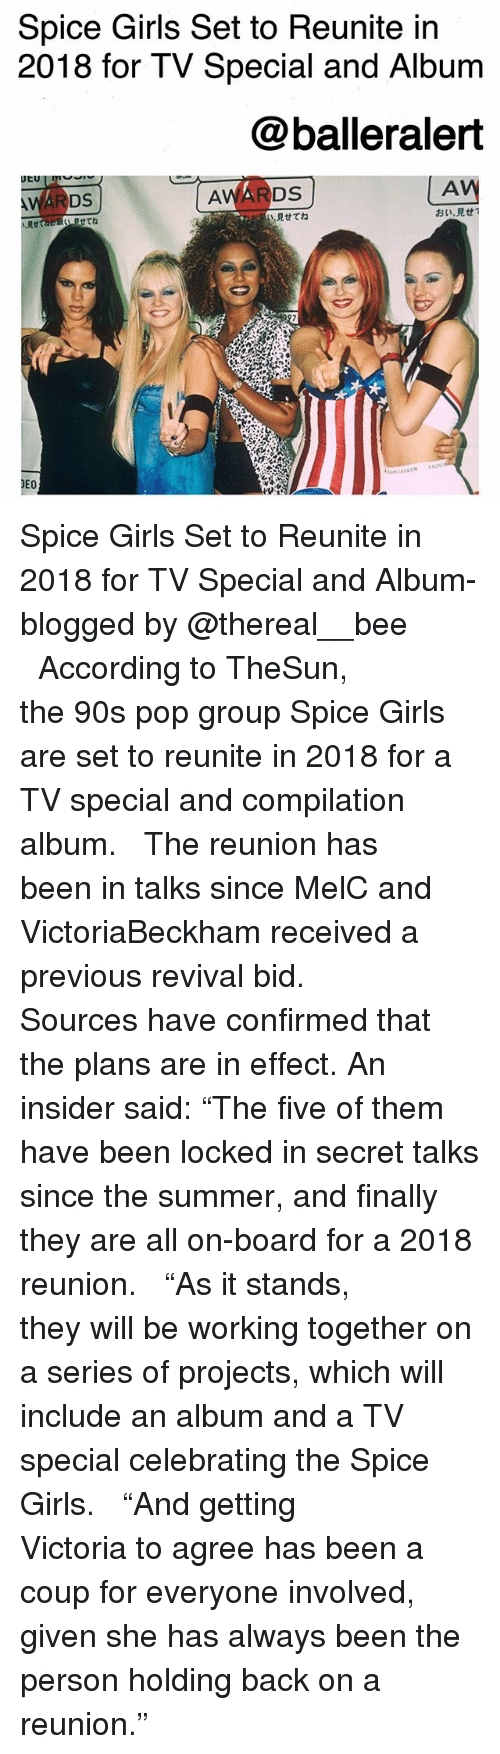 "Girls, Memes, and Pop: Spice Girls Set to Reunite in  2018 for TV Special and Album  @balleralert  AV  見せてね  おい·見せ!  Rtta  せてね  DEO Spice Girls Set to Reunite in 2018 for TV Special and Album-blogged by @thereal__bee ⠀⠀⠀⠀⠀⠀⠀⠀⠀ ⠀⠀ According to TheSun, the 90s pop group Spice Girls are set to reunite in 2018 for a TV special and compilation album. ⠀⠀⠀⠀⠀⠀⠀⠀⠀ ⠀⠀ The reunion has been in talks since MelC and VictoriaBeckham received a previous revival bid. ⠀⠀⠀⠀⠀⠀⠀⠀⠀ ⠀⠀ Sources have confirmed that the plans are in effect. An insider said: ""The five of them have been locked in secret talks since the summer, and finally they are all on-board for a 2018 reunion. ⠀⠀⠀⠀⠀⠀⠀⠀⠀ ⠀⠀ ""As it stands, they will be working together on a series of projects, which will include an album and a TV special celebrating the Spice Girls. ⠀⠀⠀⠀⠀⠀⠀⠀⠀ ⠀⠀ ""And getting Victoria to agree has been a coup for everyone involved, given she has always been the person holding back on a reunion."""